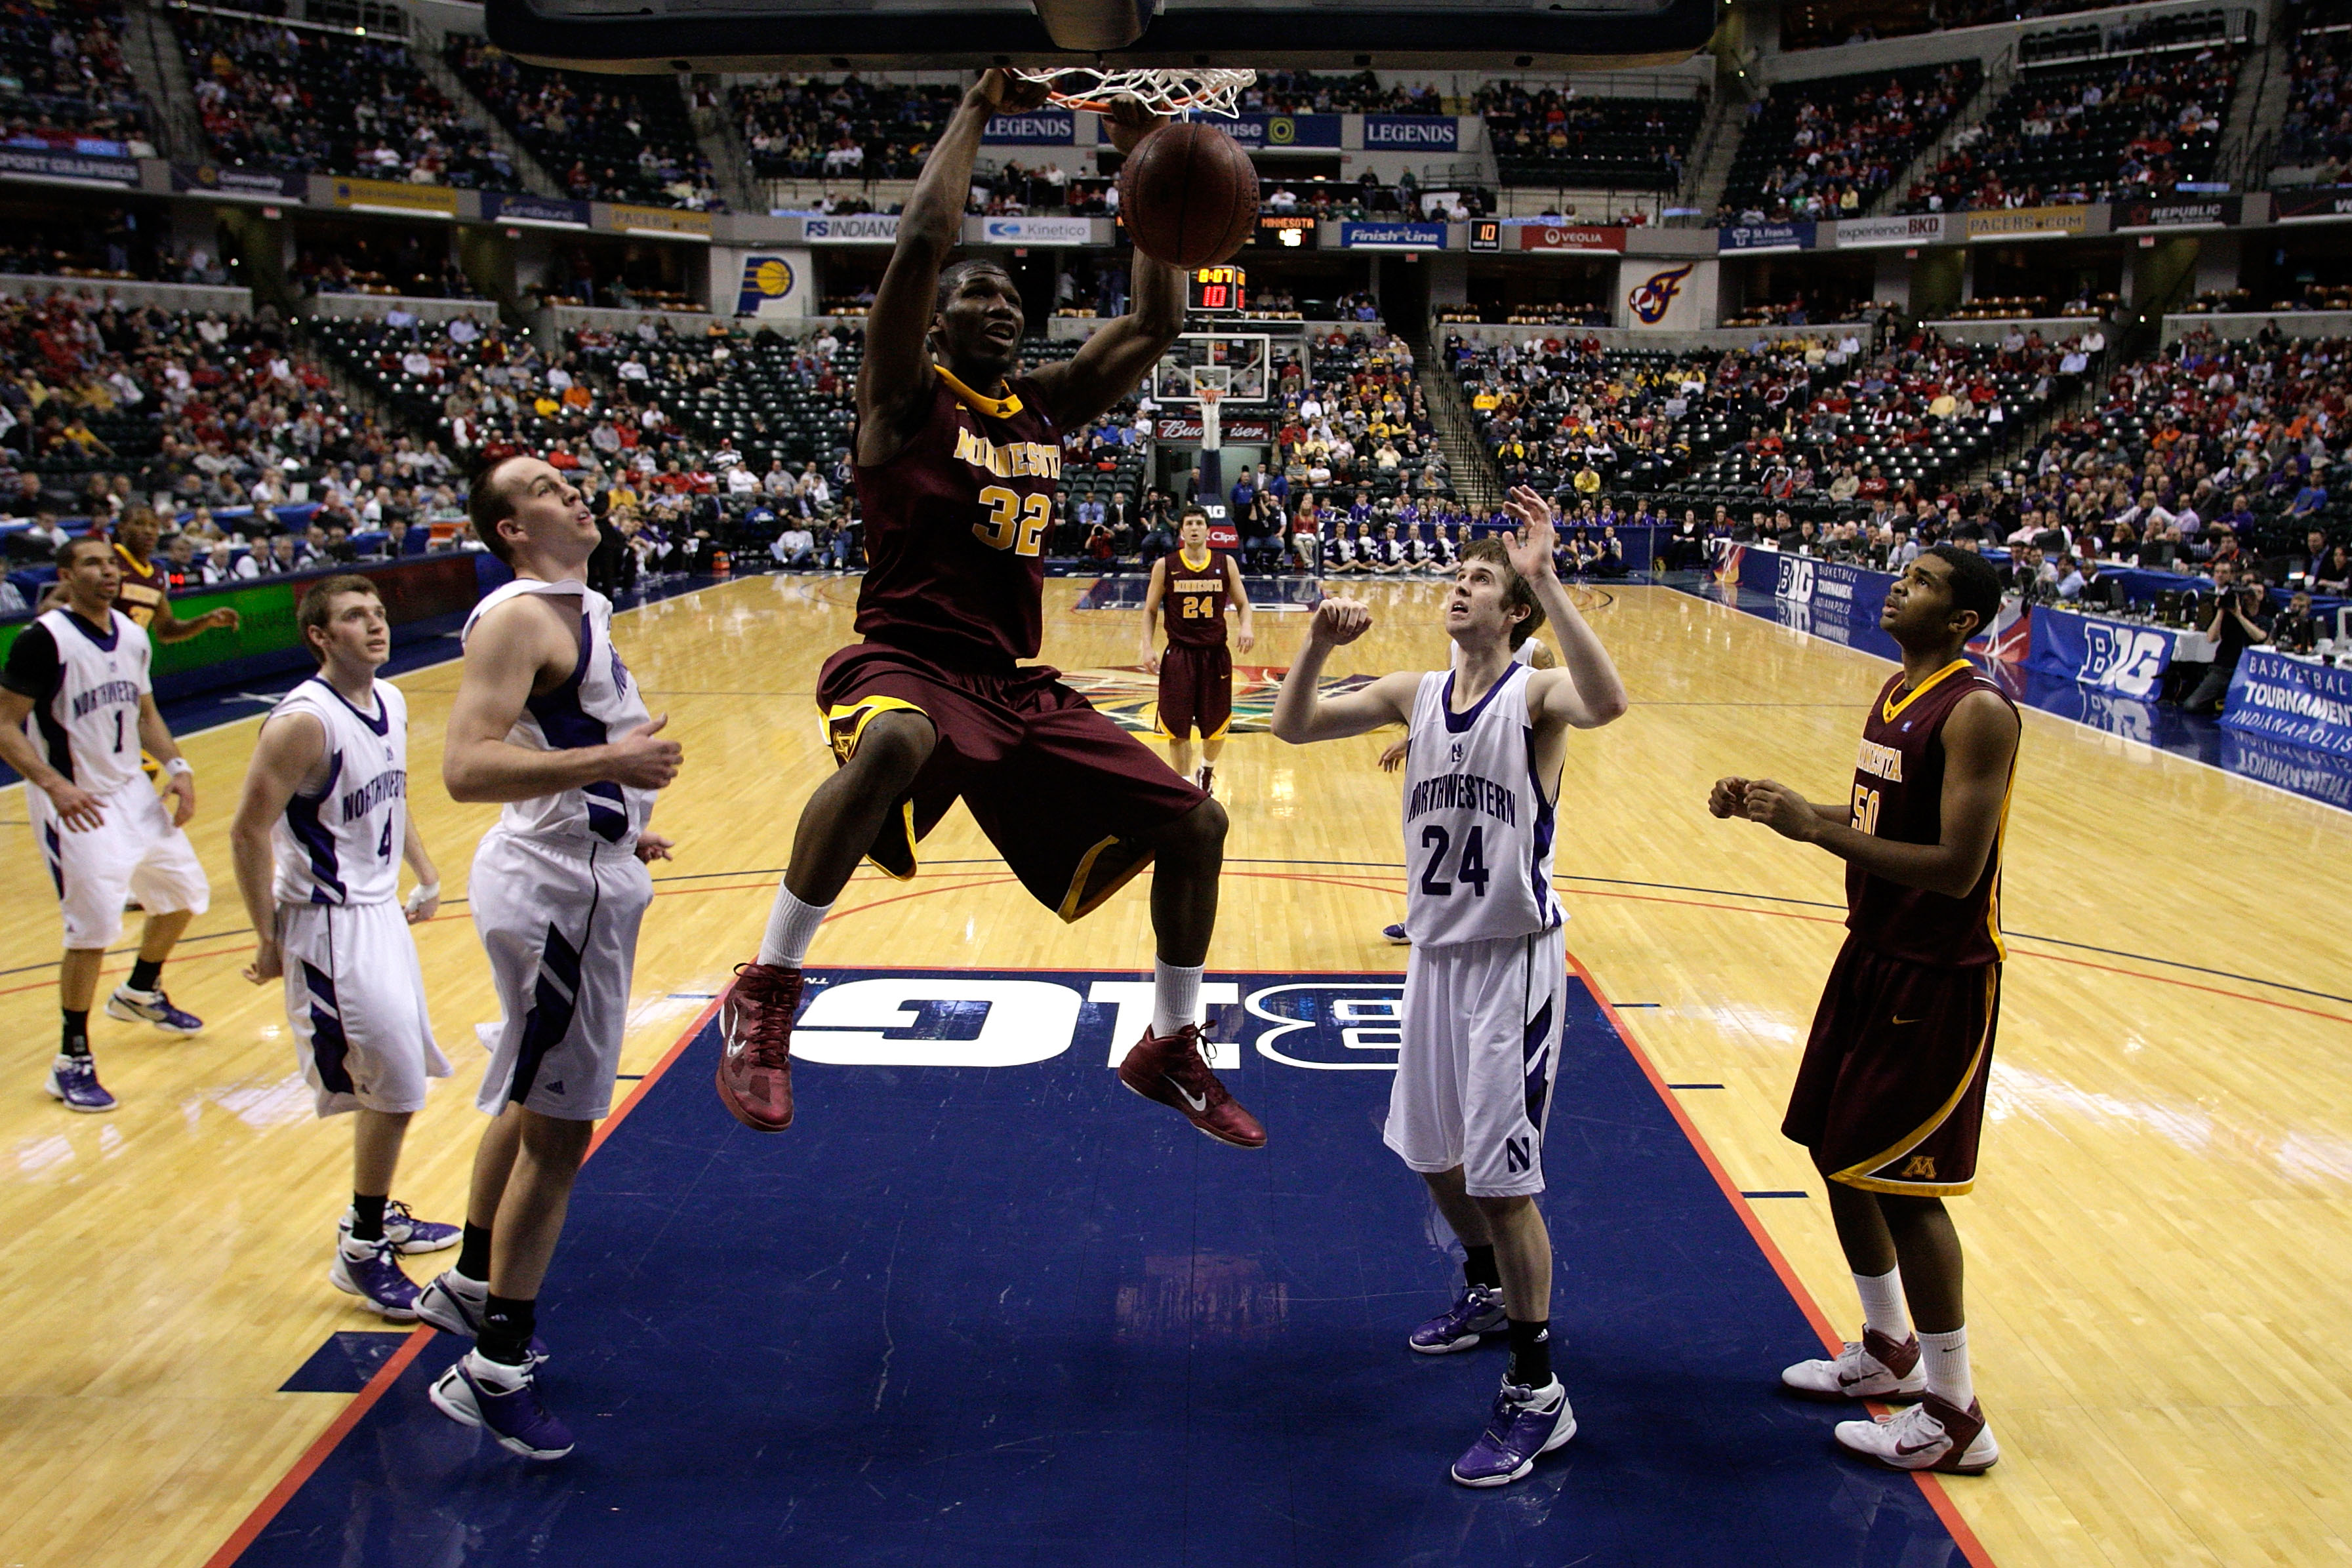 INDIANAPOLIS, IN - MARCH 10:  Trevor Mbakwe #32 of the Minnesota Golden Gophers dunks against John Shurna #24 of the Northwestern Wildcats during the first round of the 2011 Big Ten Men's Basketball Tournament at Conseco Fieldhouse on March 10, 2011 in In